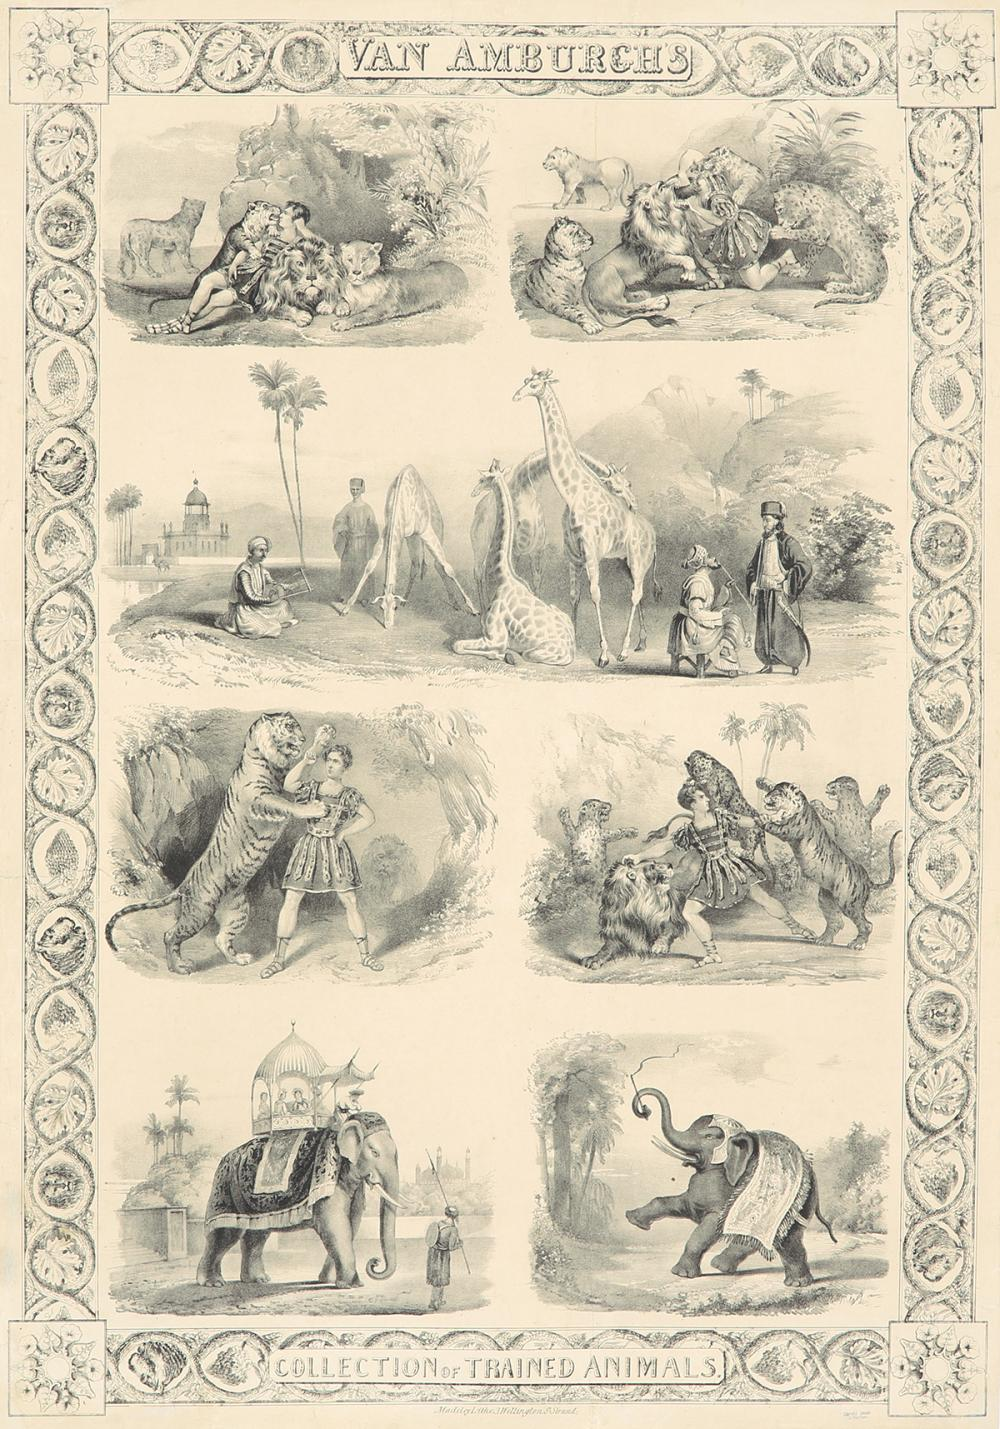 Van Amburgh's / Collection of Trained Animals. ca. 1845.